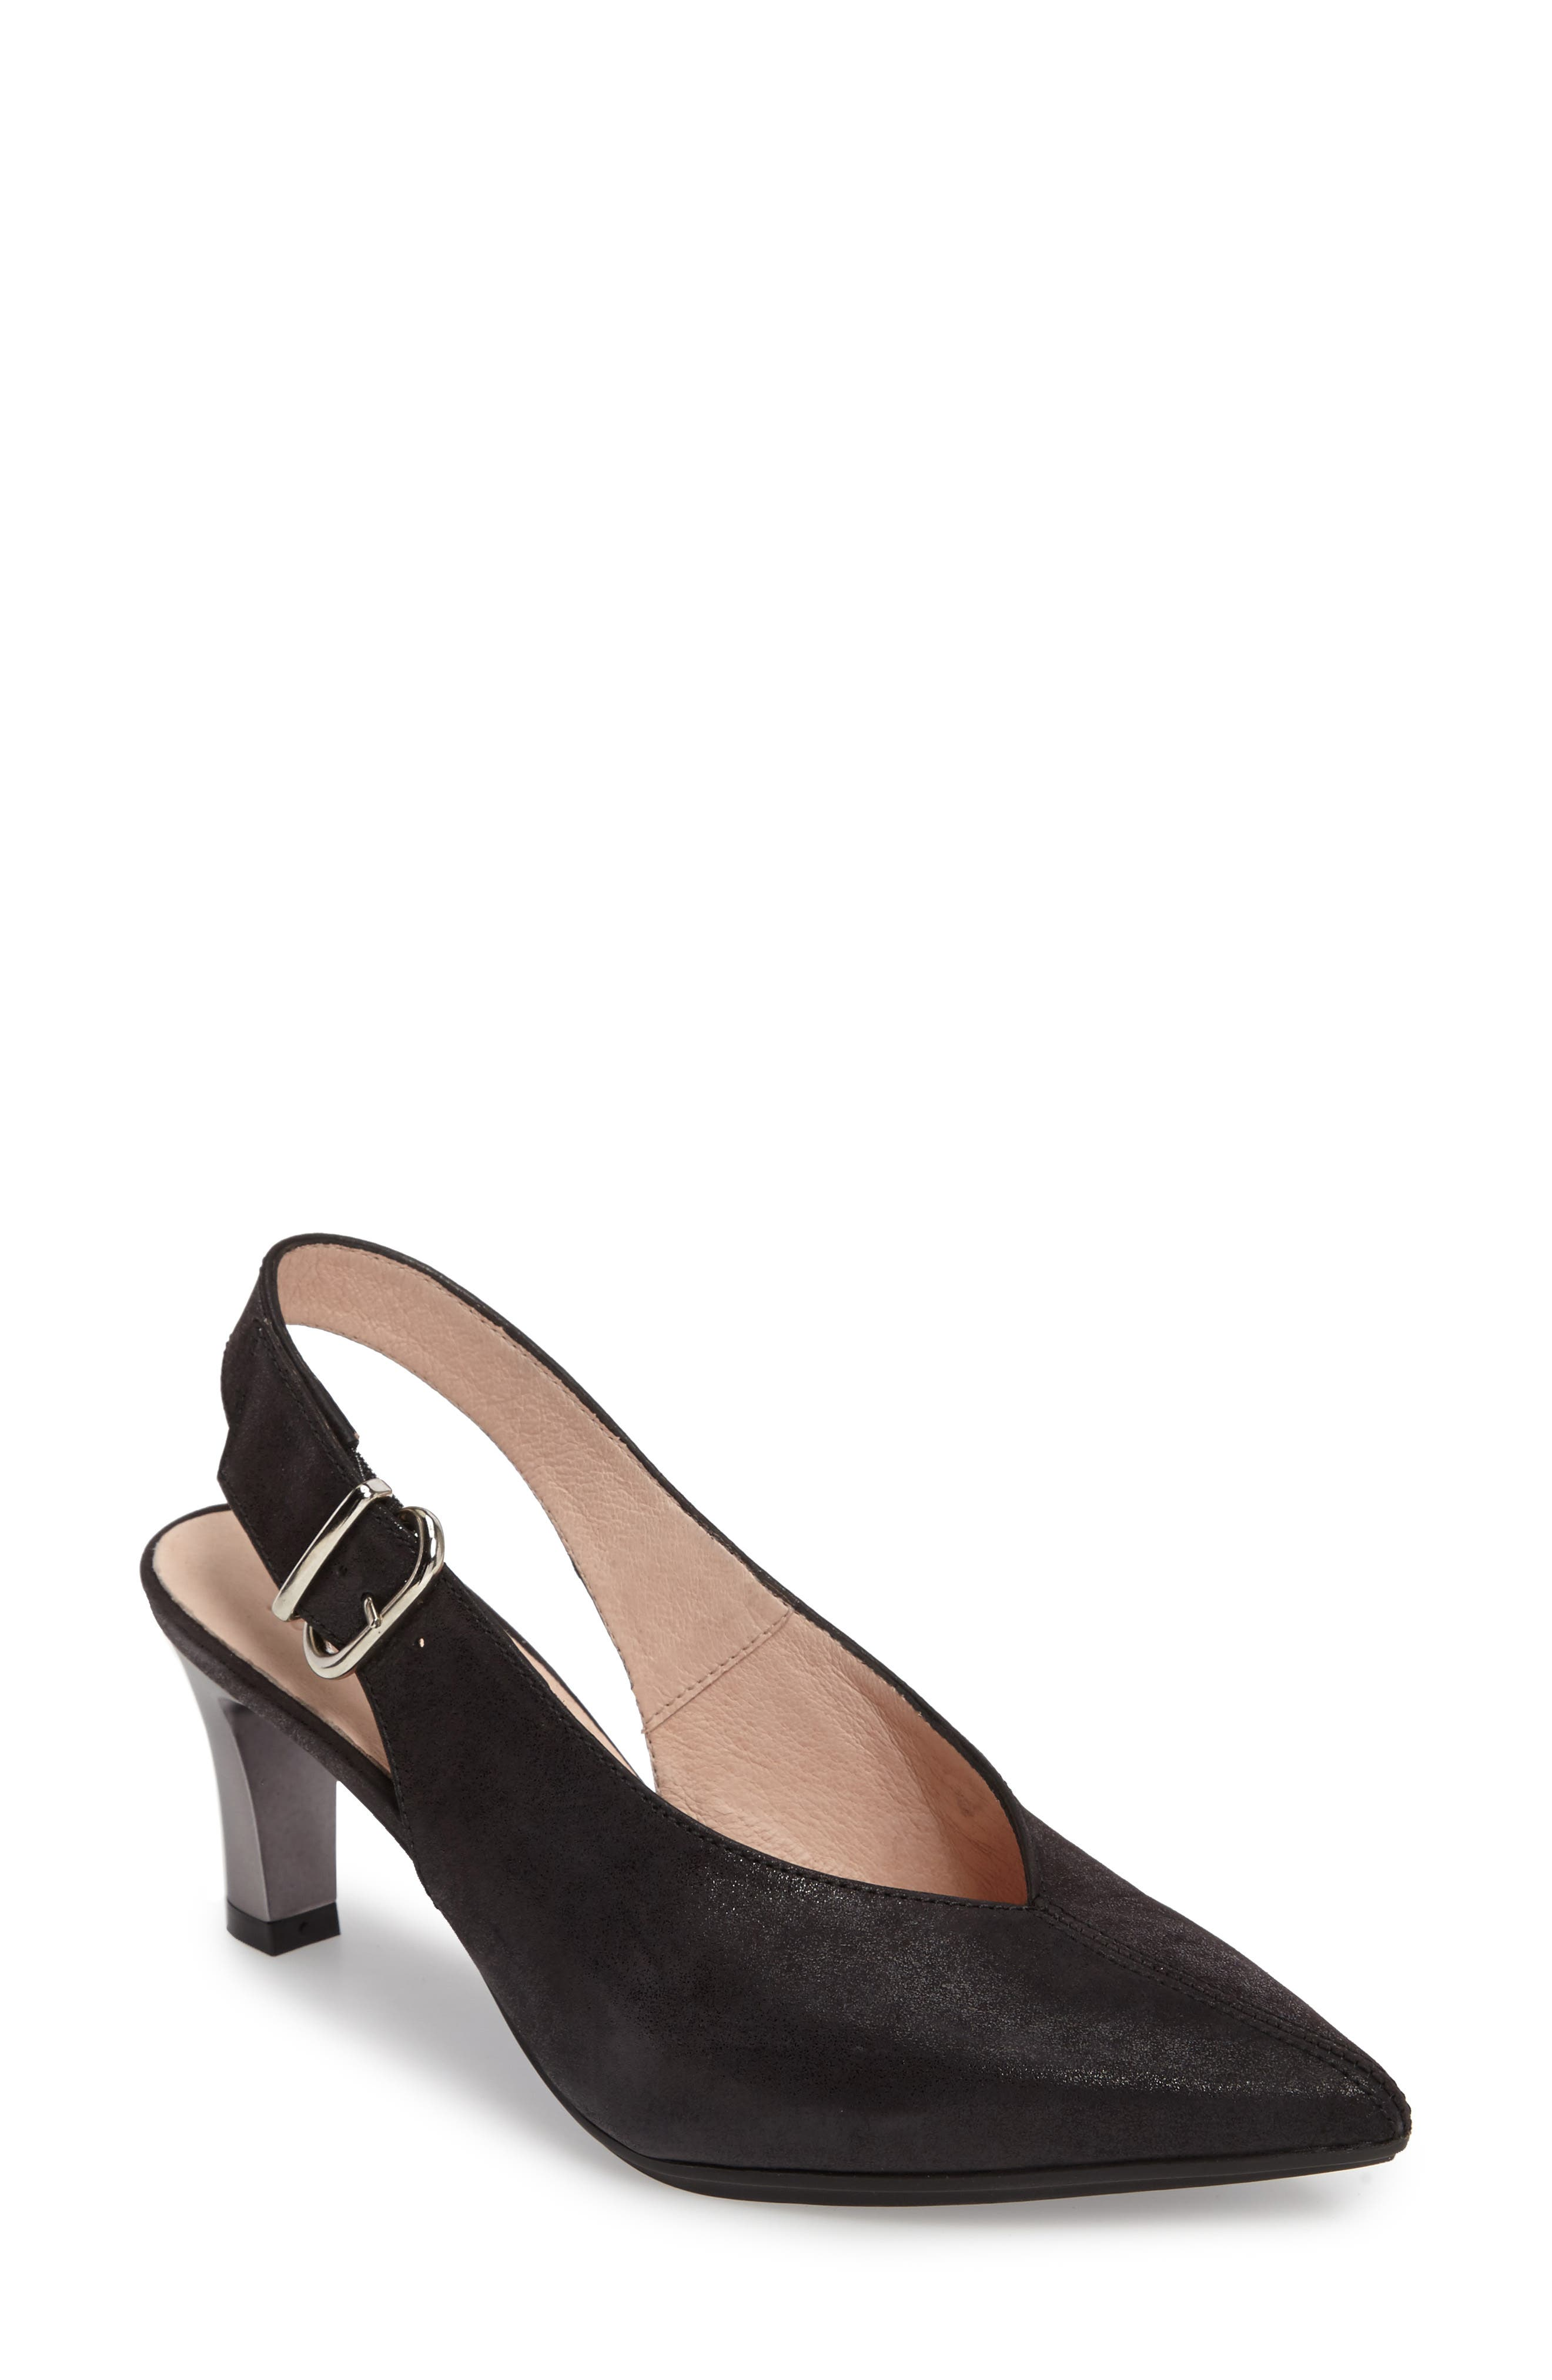 Honey Pointy Toe Slingback Pump,                         Main,                         color, 001